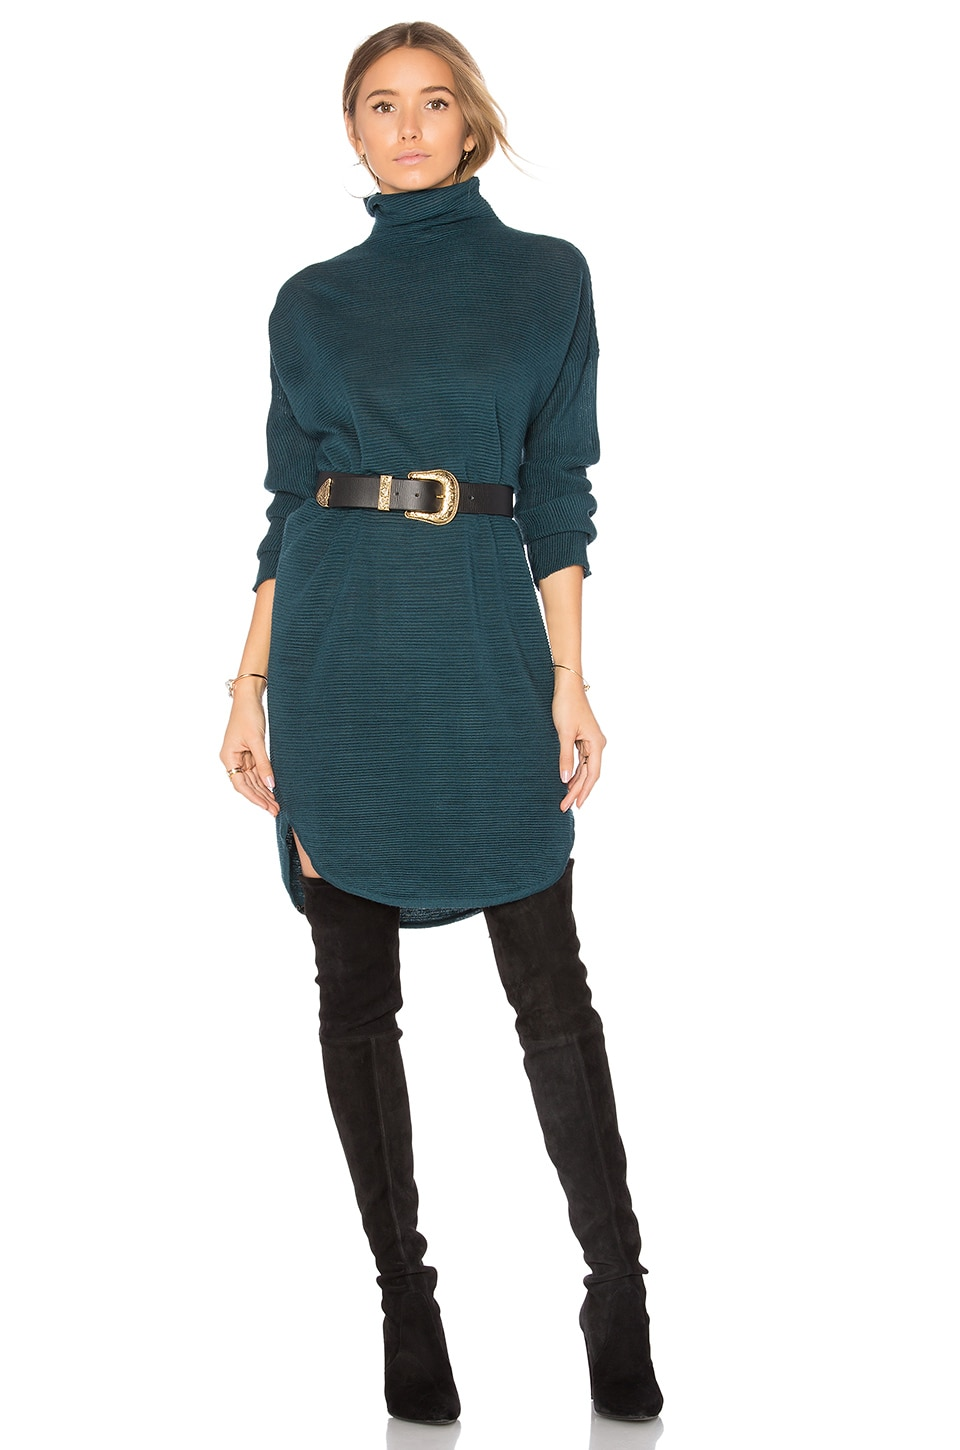 Lovers + Friends x REVOLVE Gigi Sweater Dress in Jade